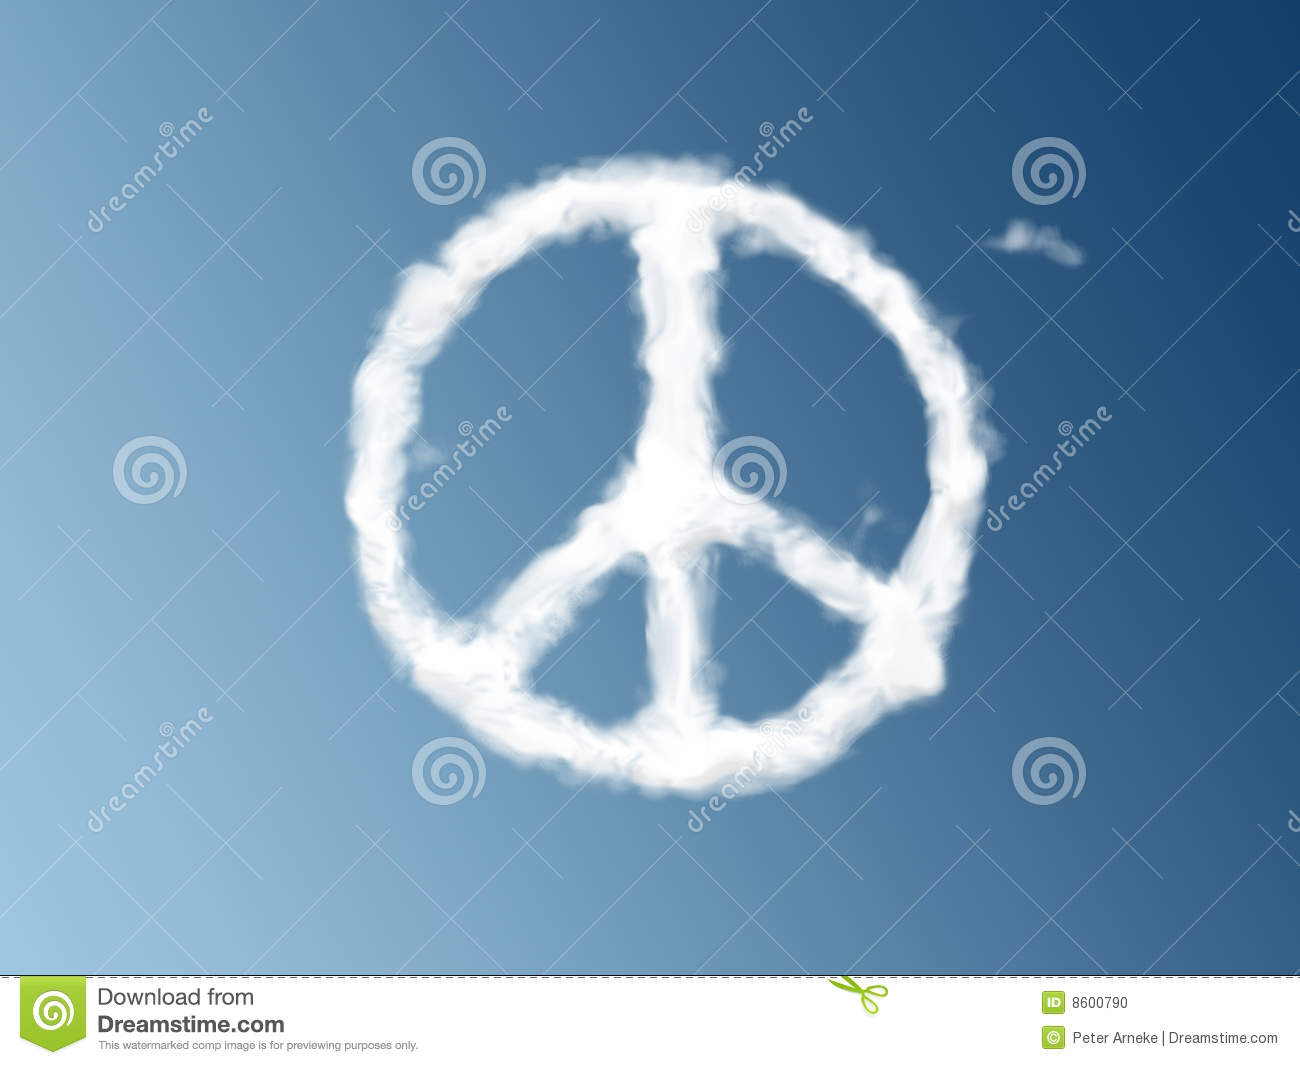 Peace symbol as a cloud